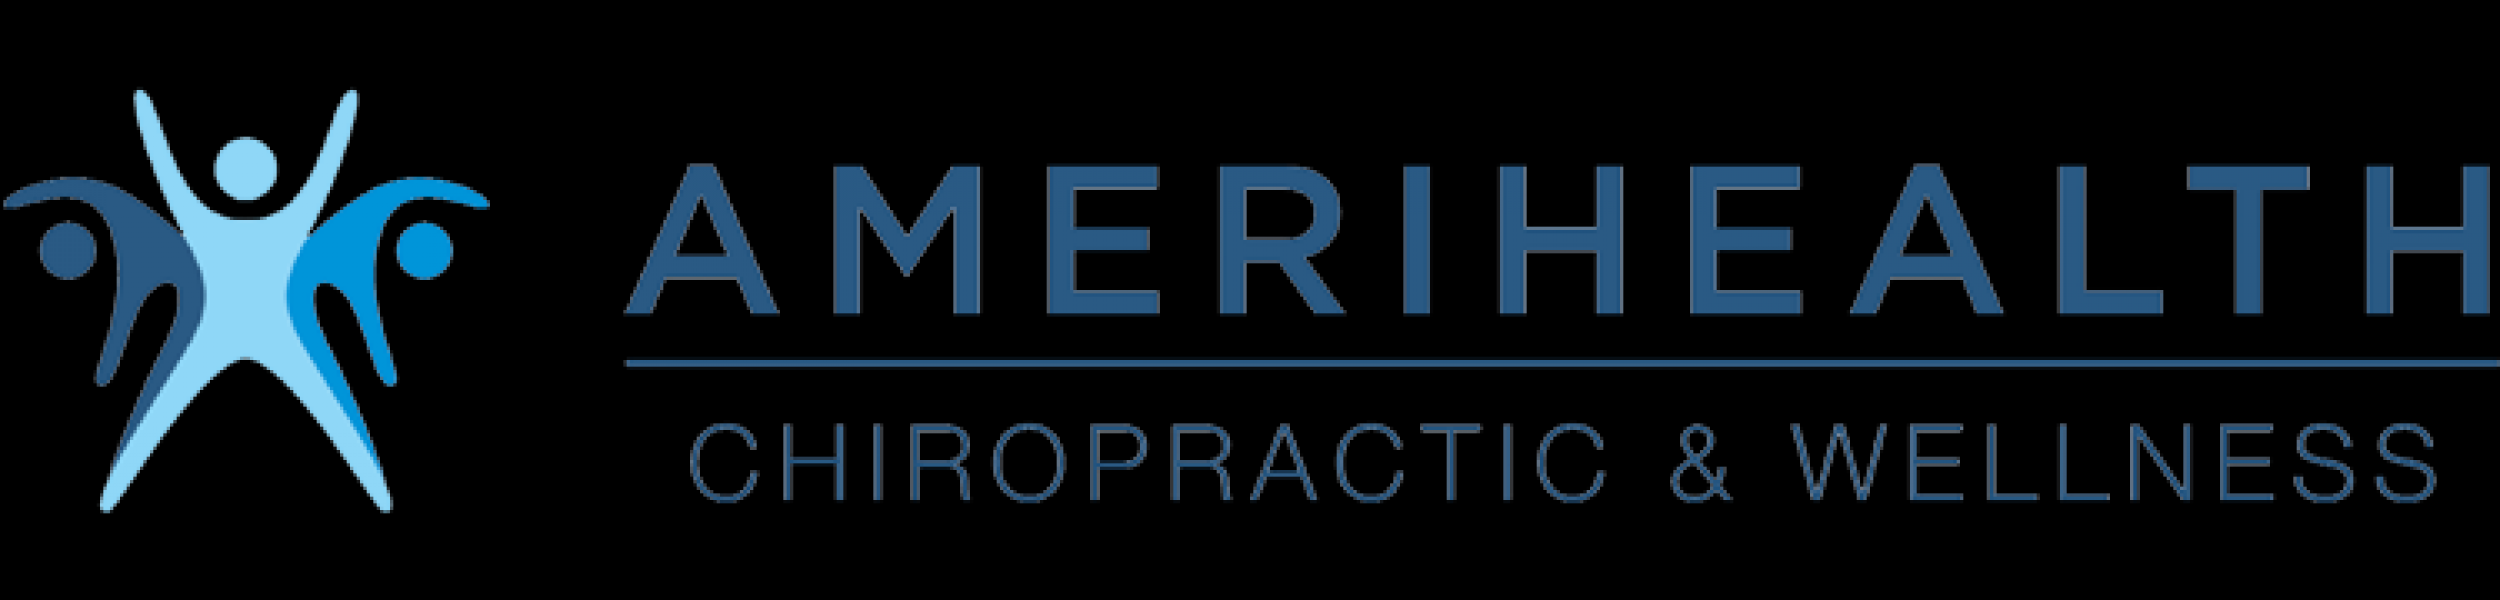 Welcome To AmeriHealth Chiropractic & Wellness In  Ohio